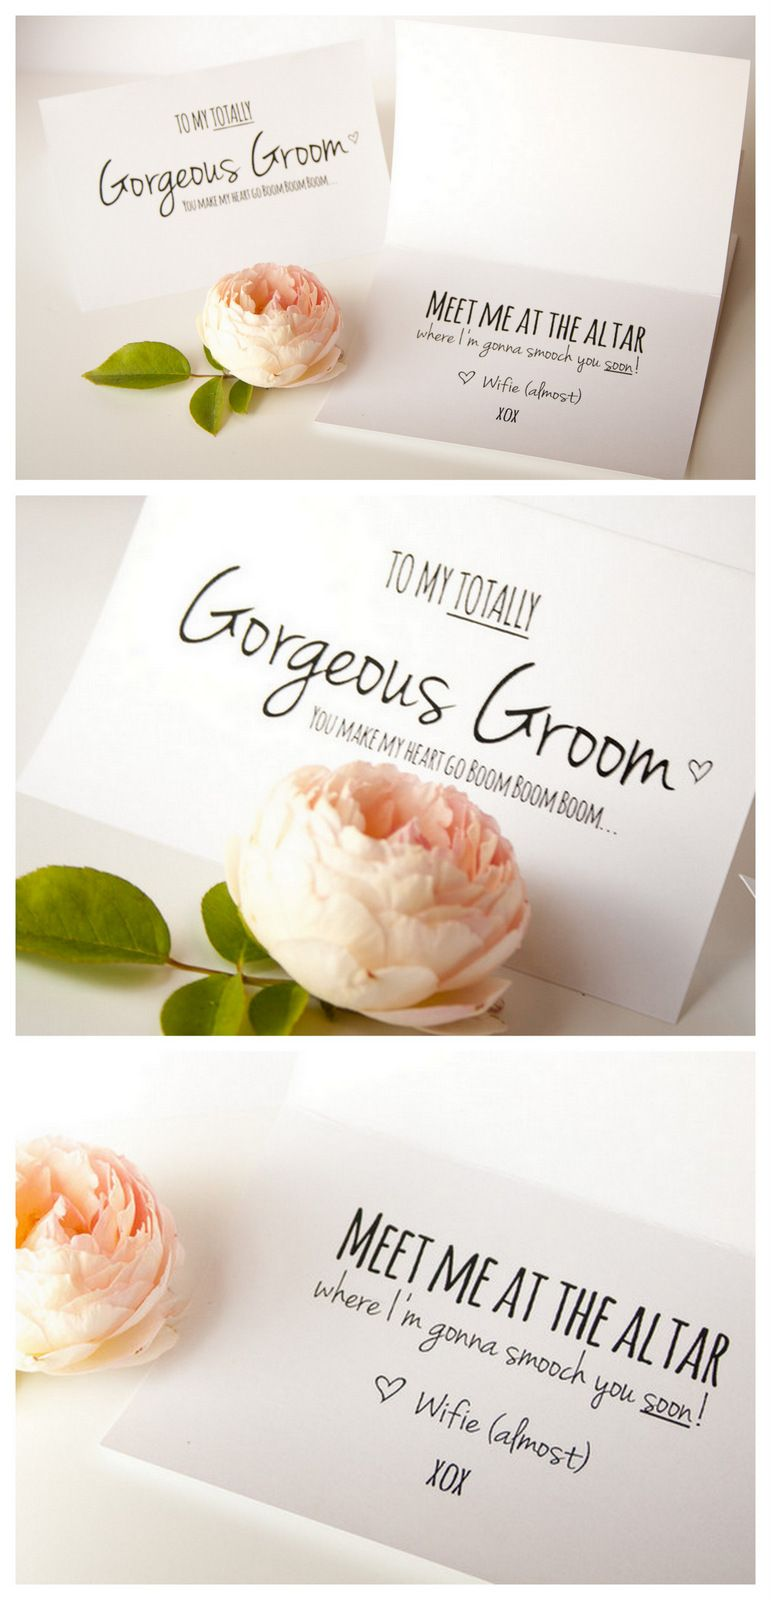 To My Gorgeous Groom Card Printable Free Printable Download is part of Wedding card diy, Wedding planning printables, Wedding gift cards, Groom card, Free wedding printables, Wedding cards - You Make My Heart Go Boom Boom Boom ♥ Today's cute free wedding printable download is for that amazing man you're about to exchange vows with  your absolutely gorgeous groom! It's a super easy DIY project that you can complete